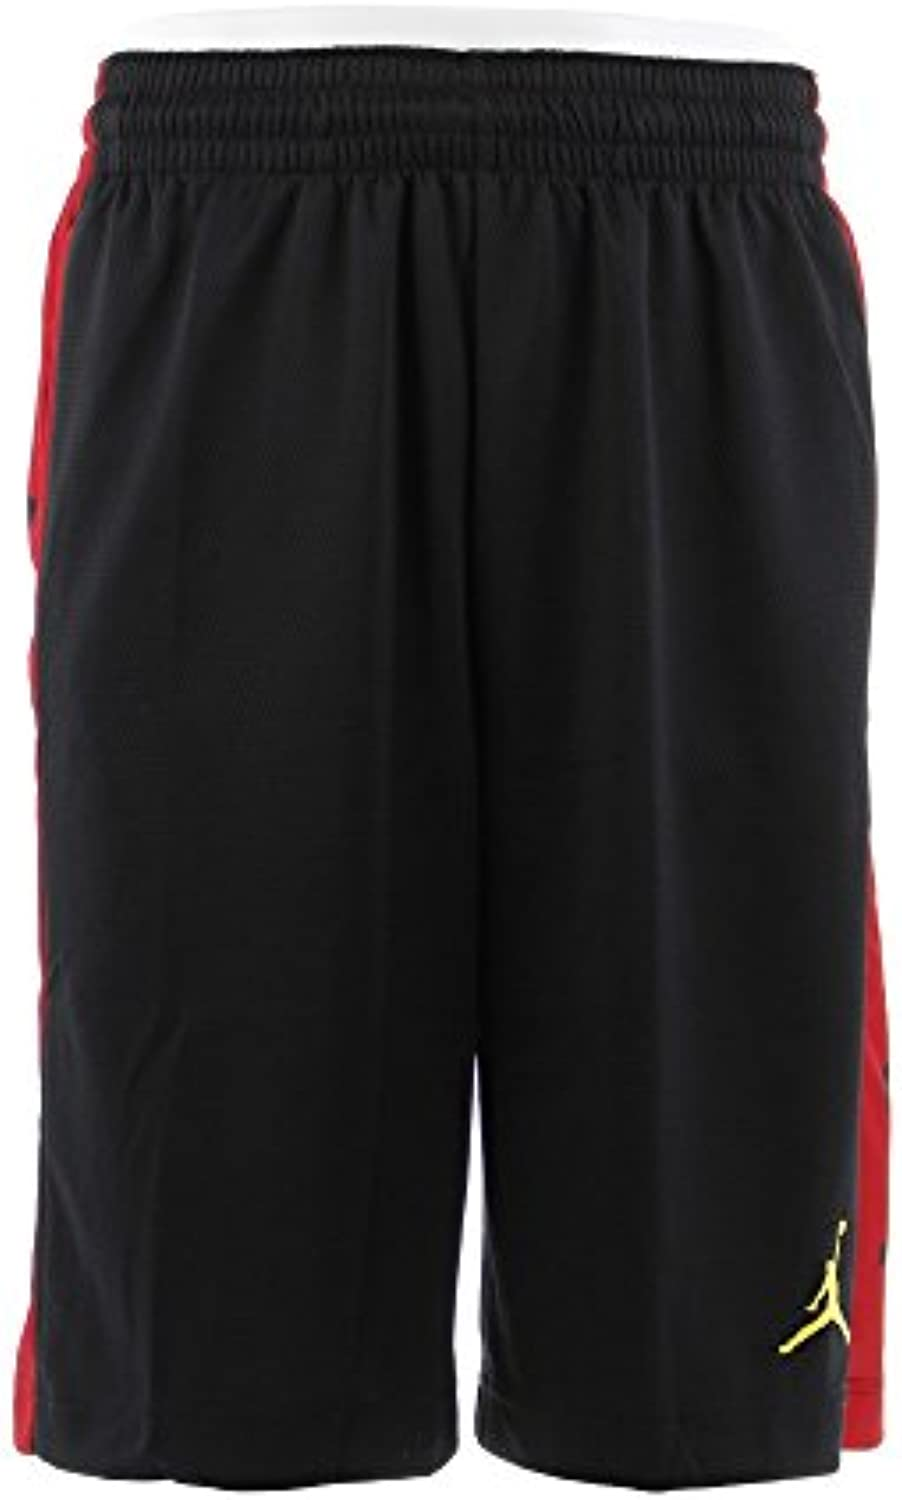 Nike Rise Graphic, Pantalones Cortos para Hombre, Hombre, 888376 011, Nero/Gym Red/Gym Red/Tour Yellow, X-Large